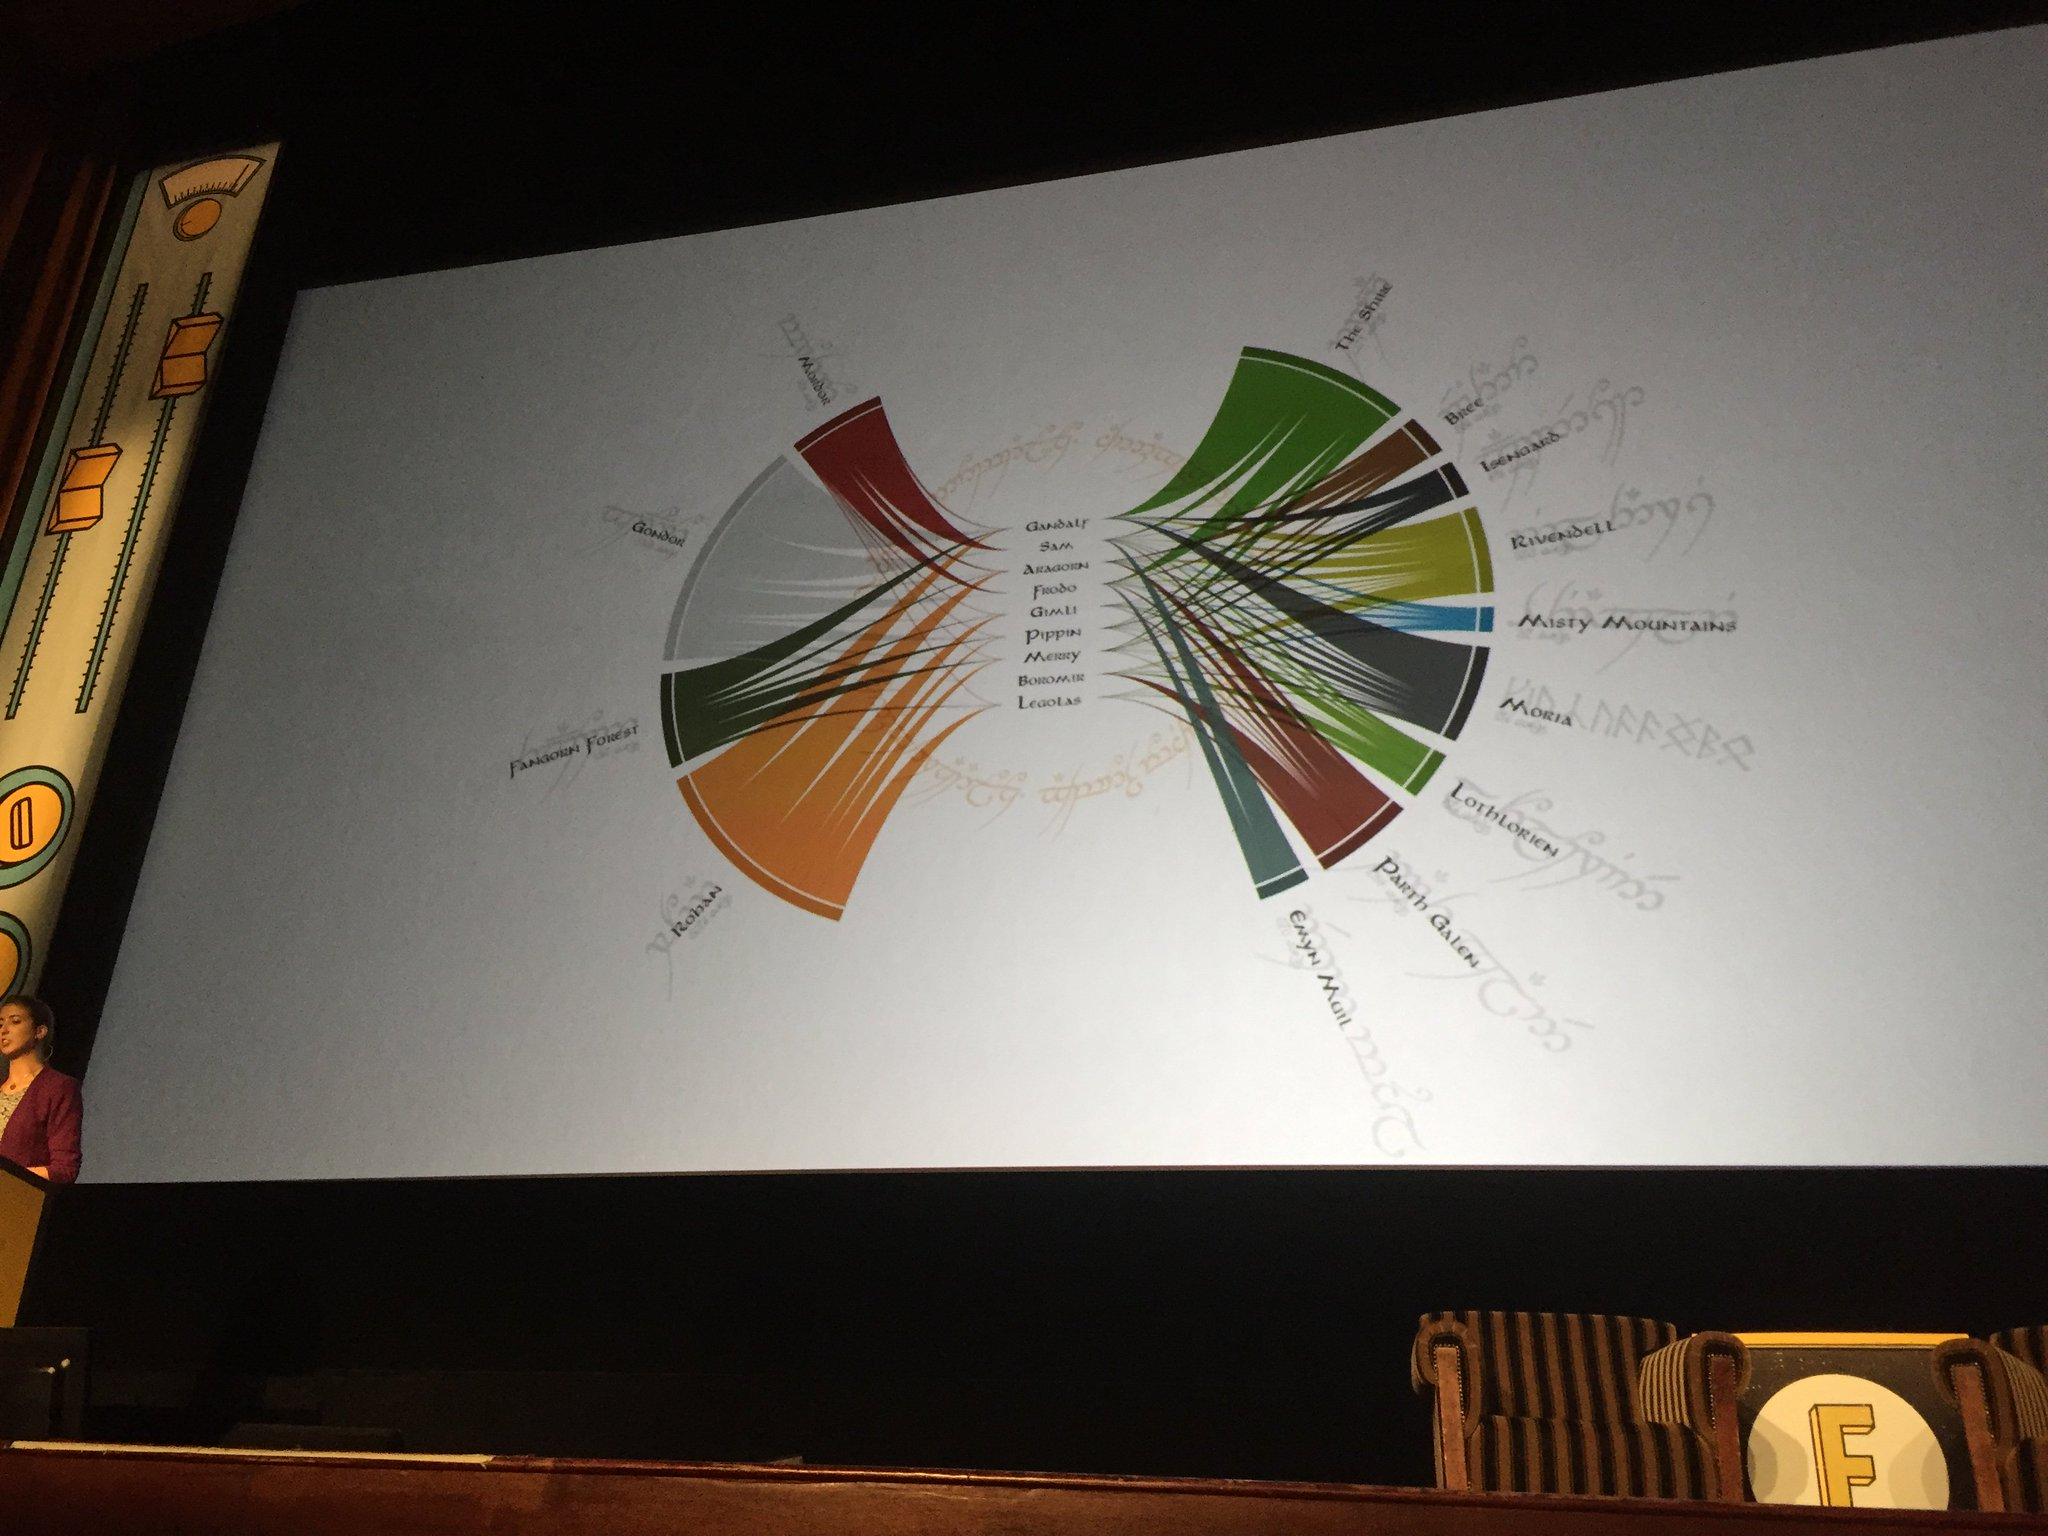 An exceptional talk on data visualization by @NadiehBremer at #fronteers. Mind-blowing! https://t.co/iYajxeOIQb